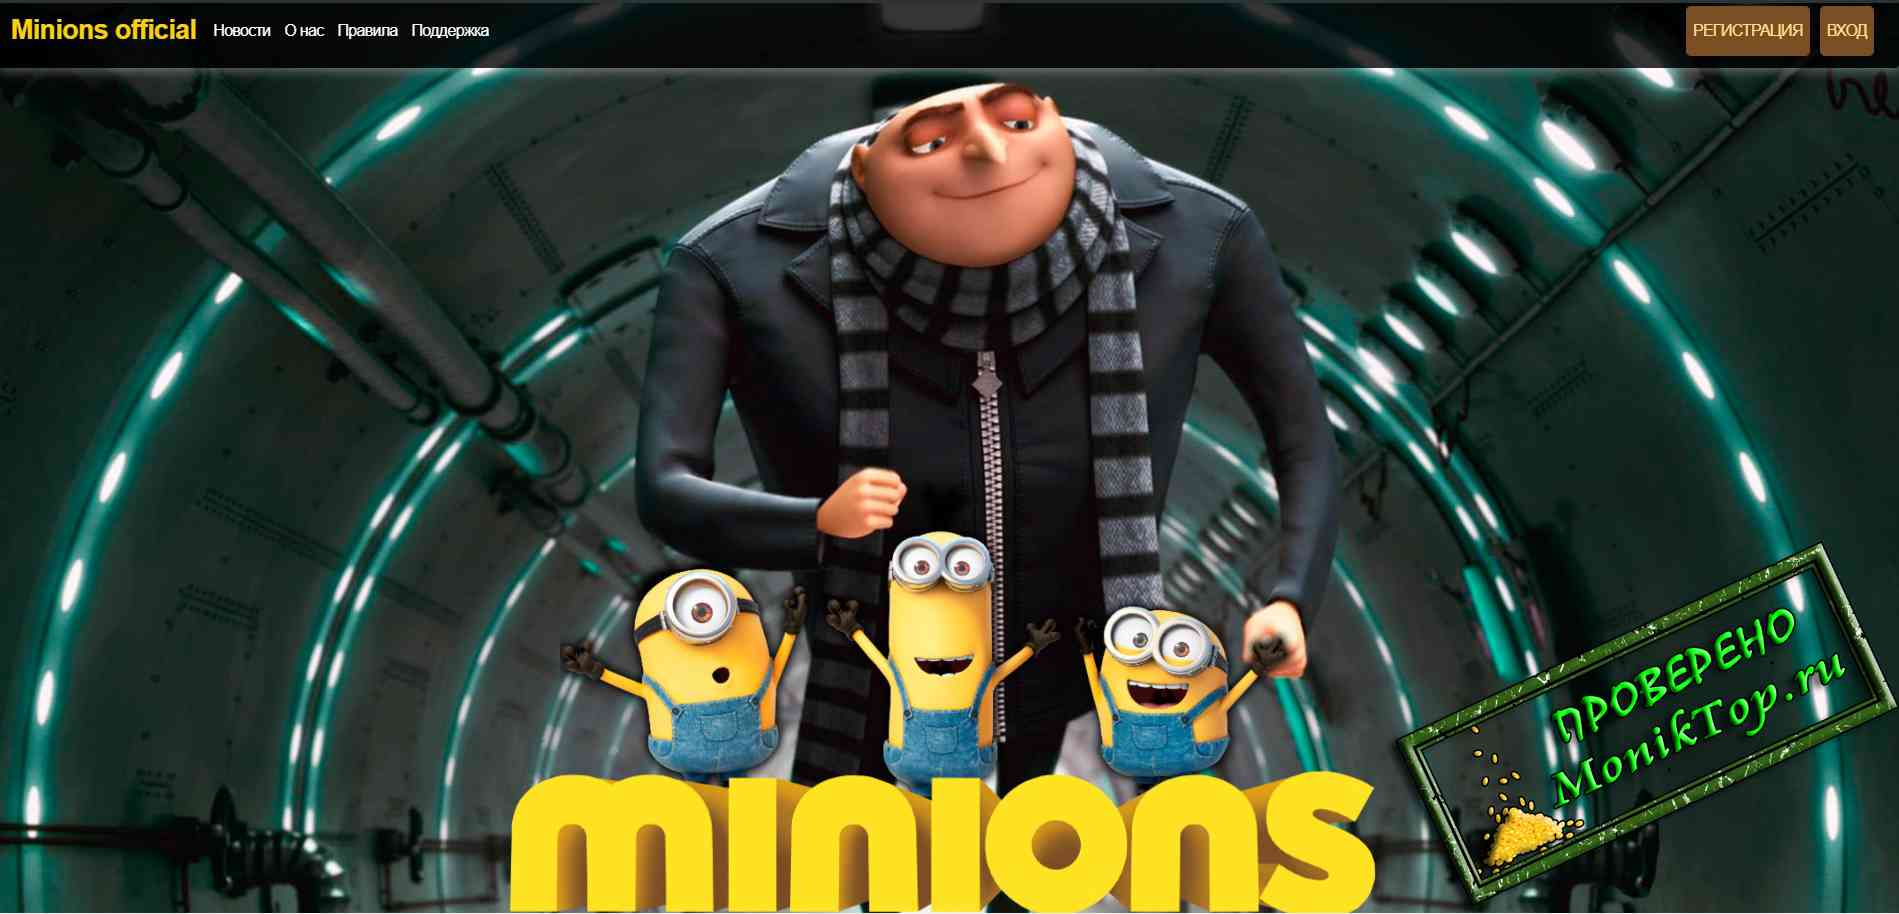 Minions-official